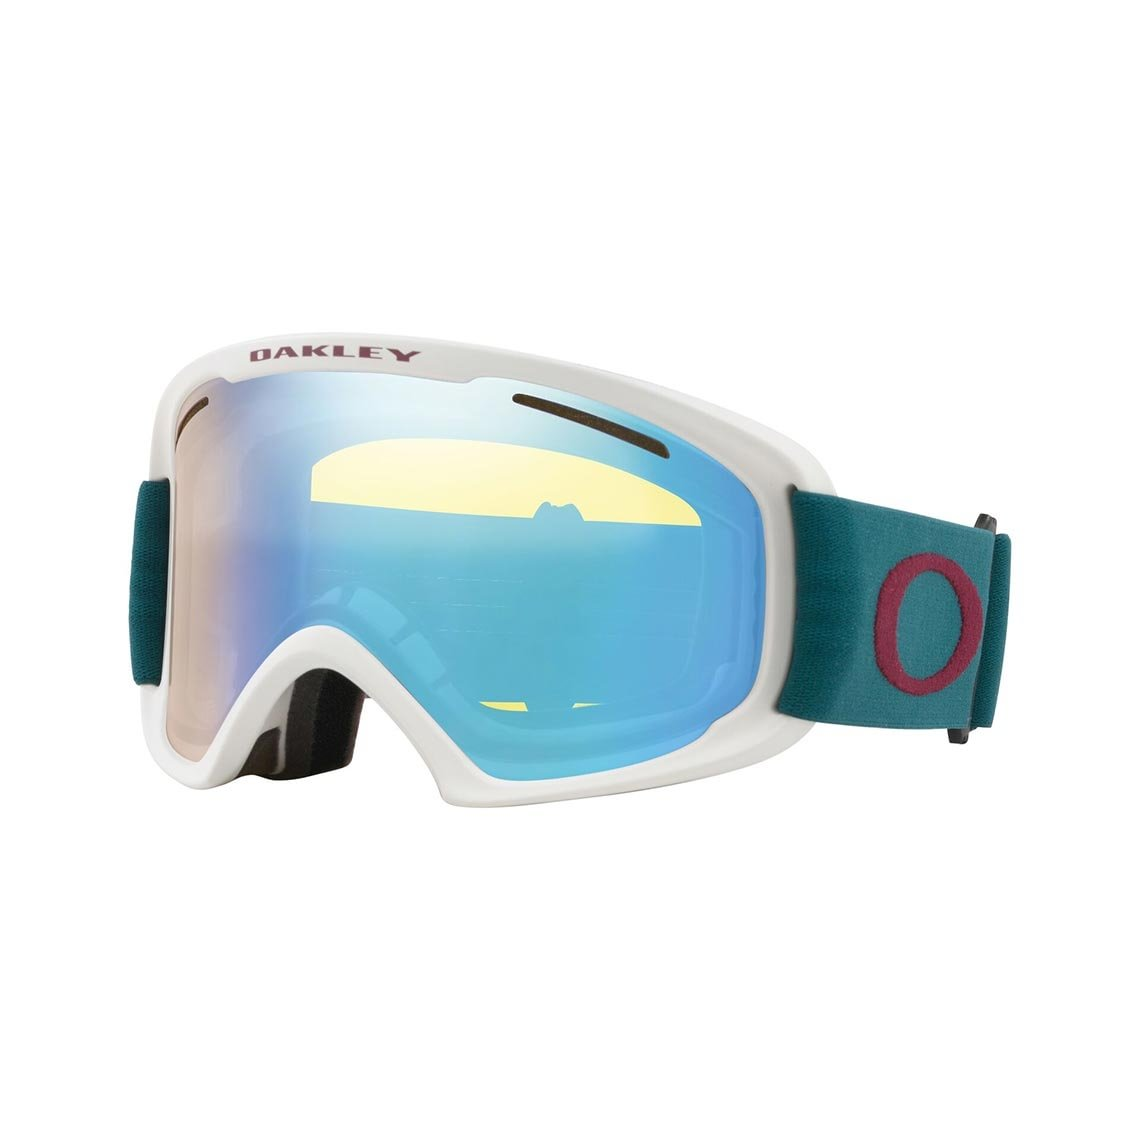 Oakley O Frame 2.0 PRO XL High Intensity Yellow OO7112-09